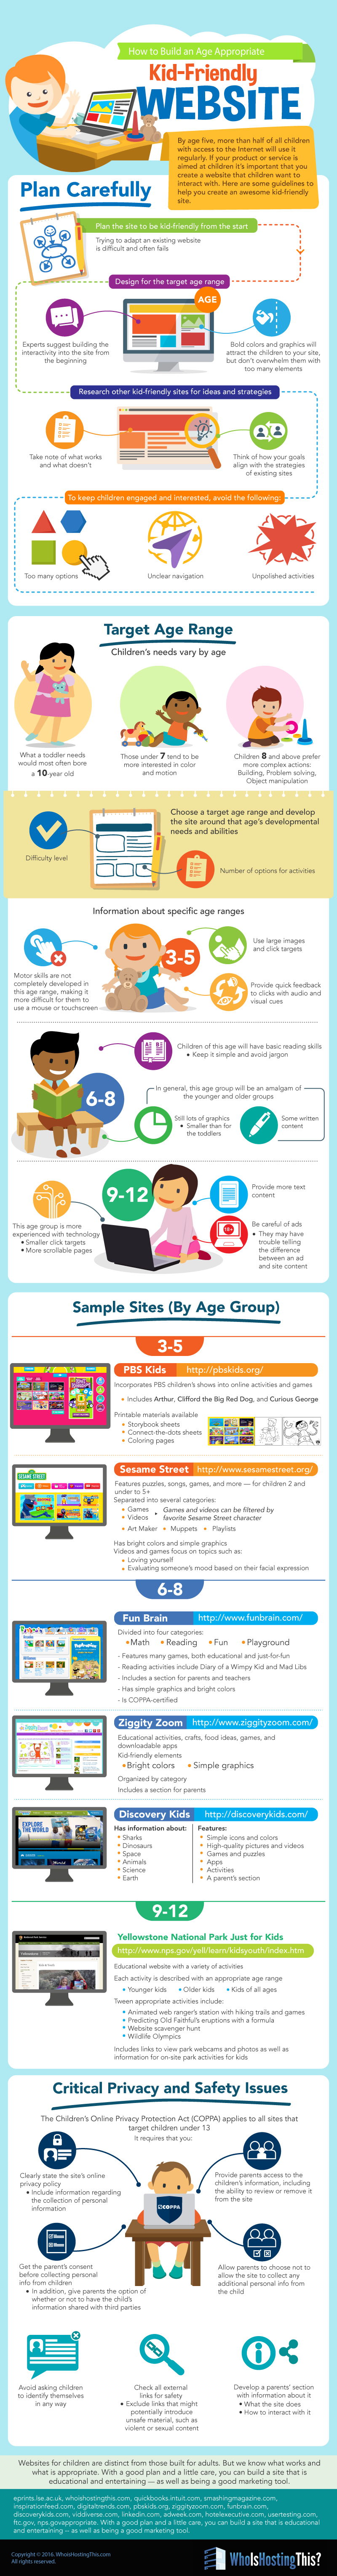 An Interesting Visual Guide on How to Create Kid Friendly Websites